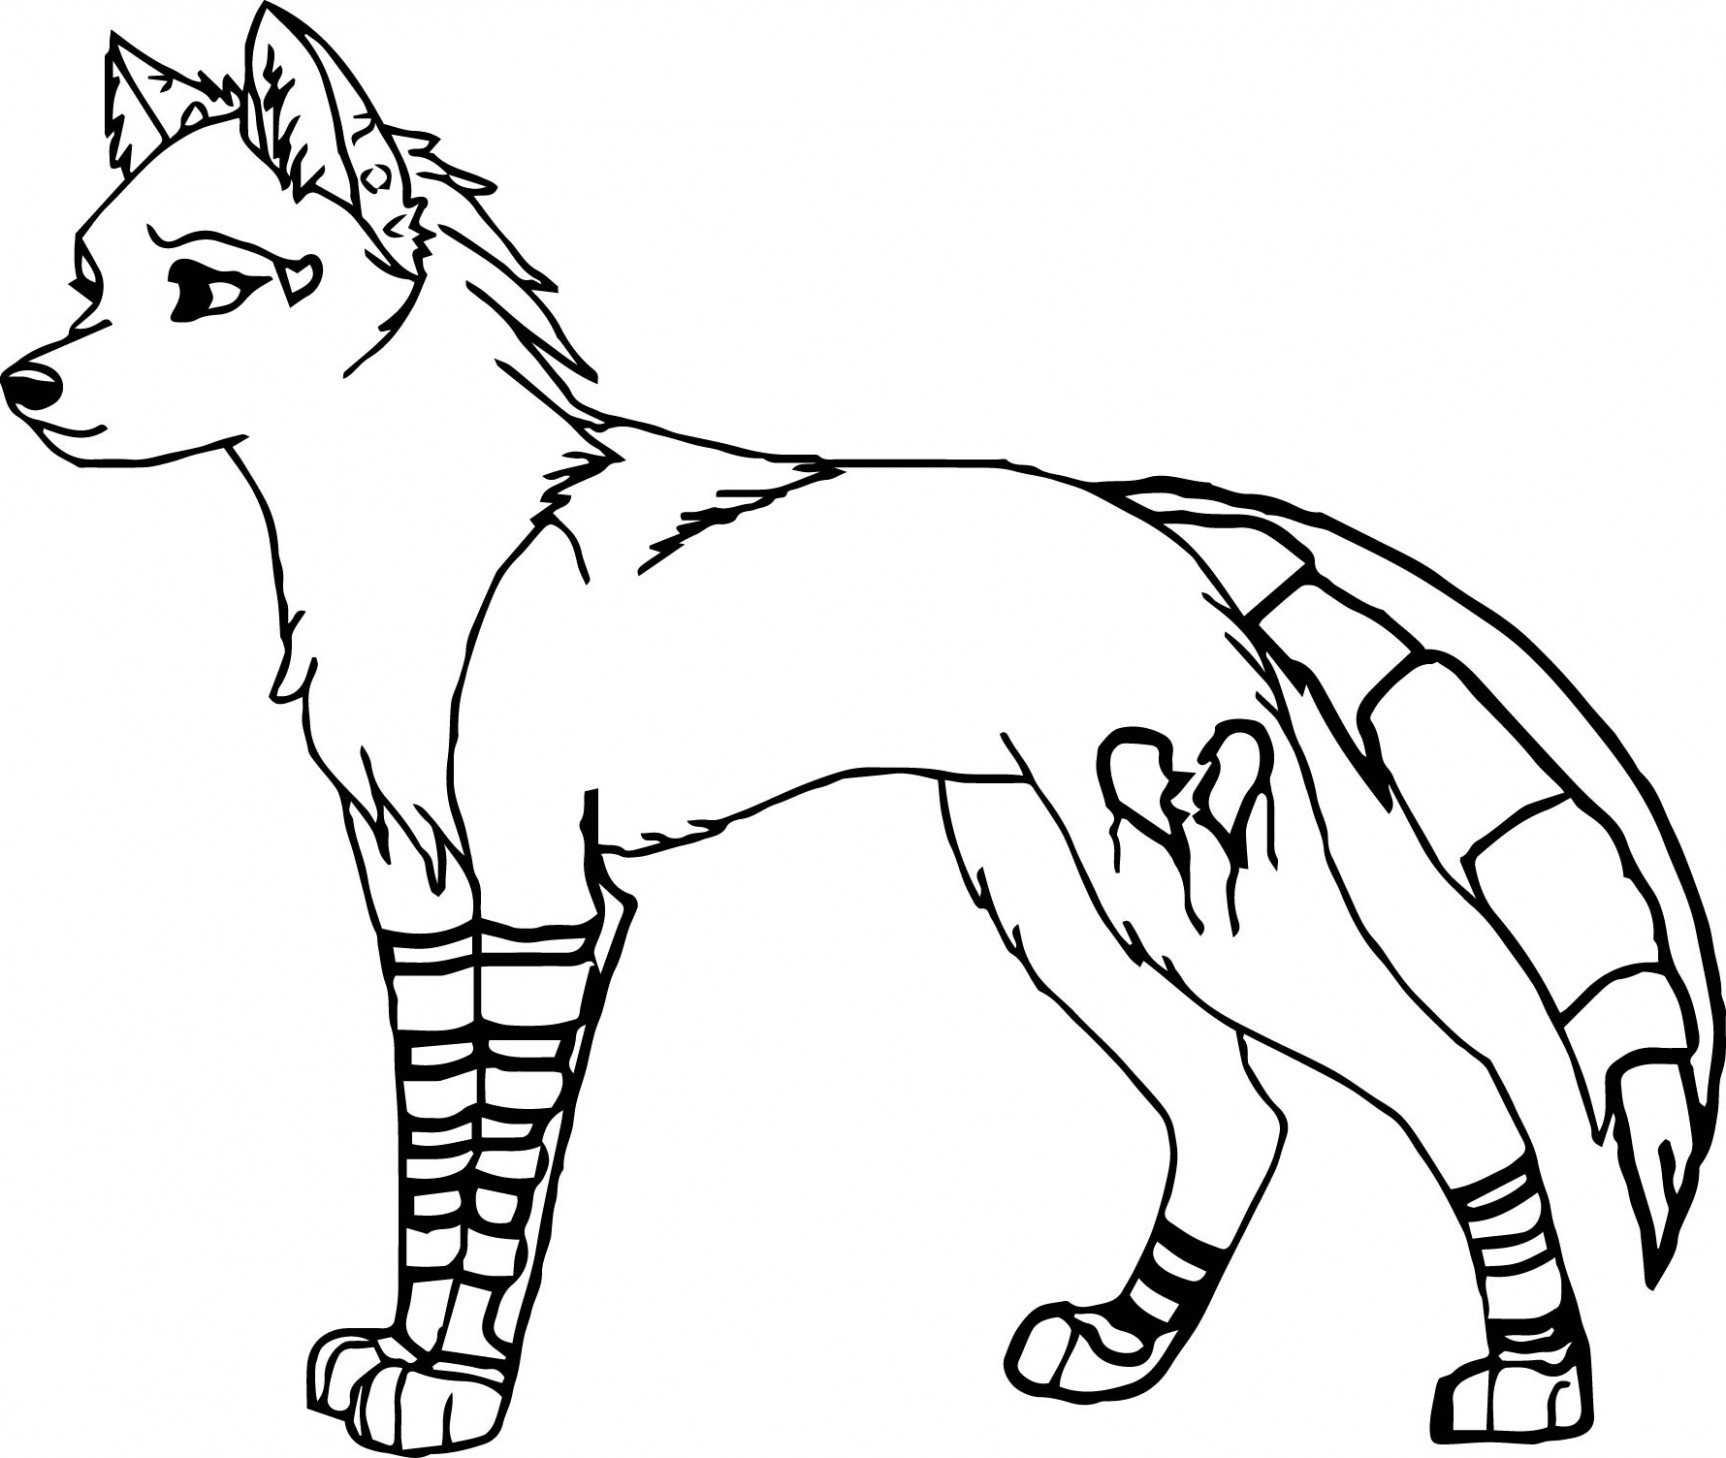 Coloring Ideas : Astonishing Wolf Coloring Pages For Kids Peter And ..